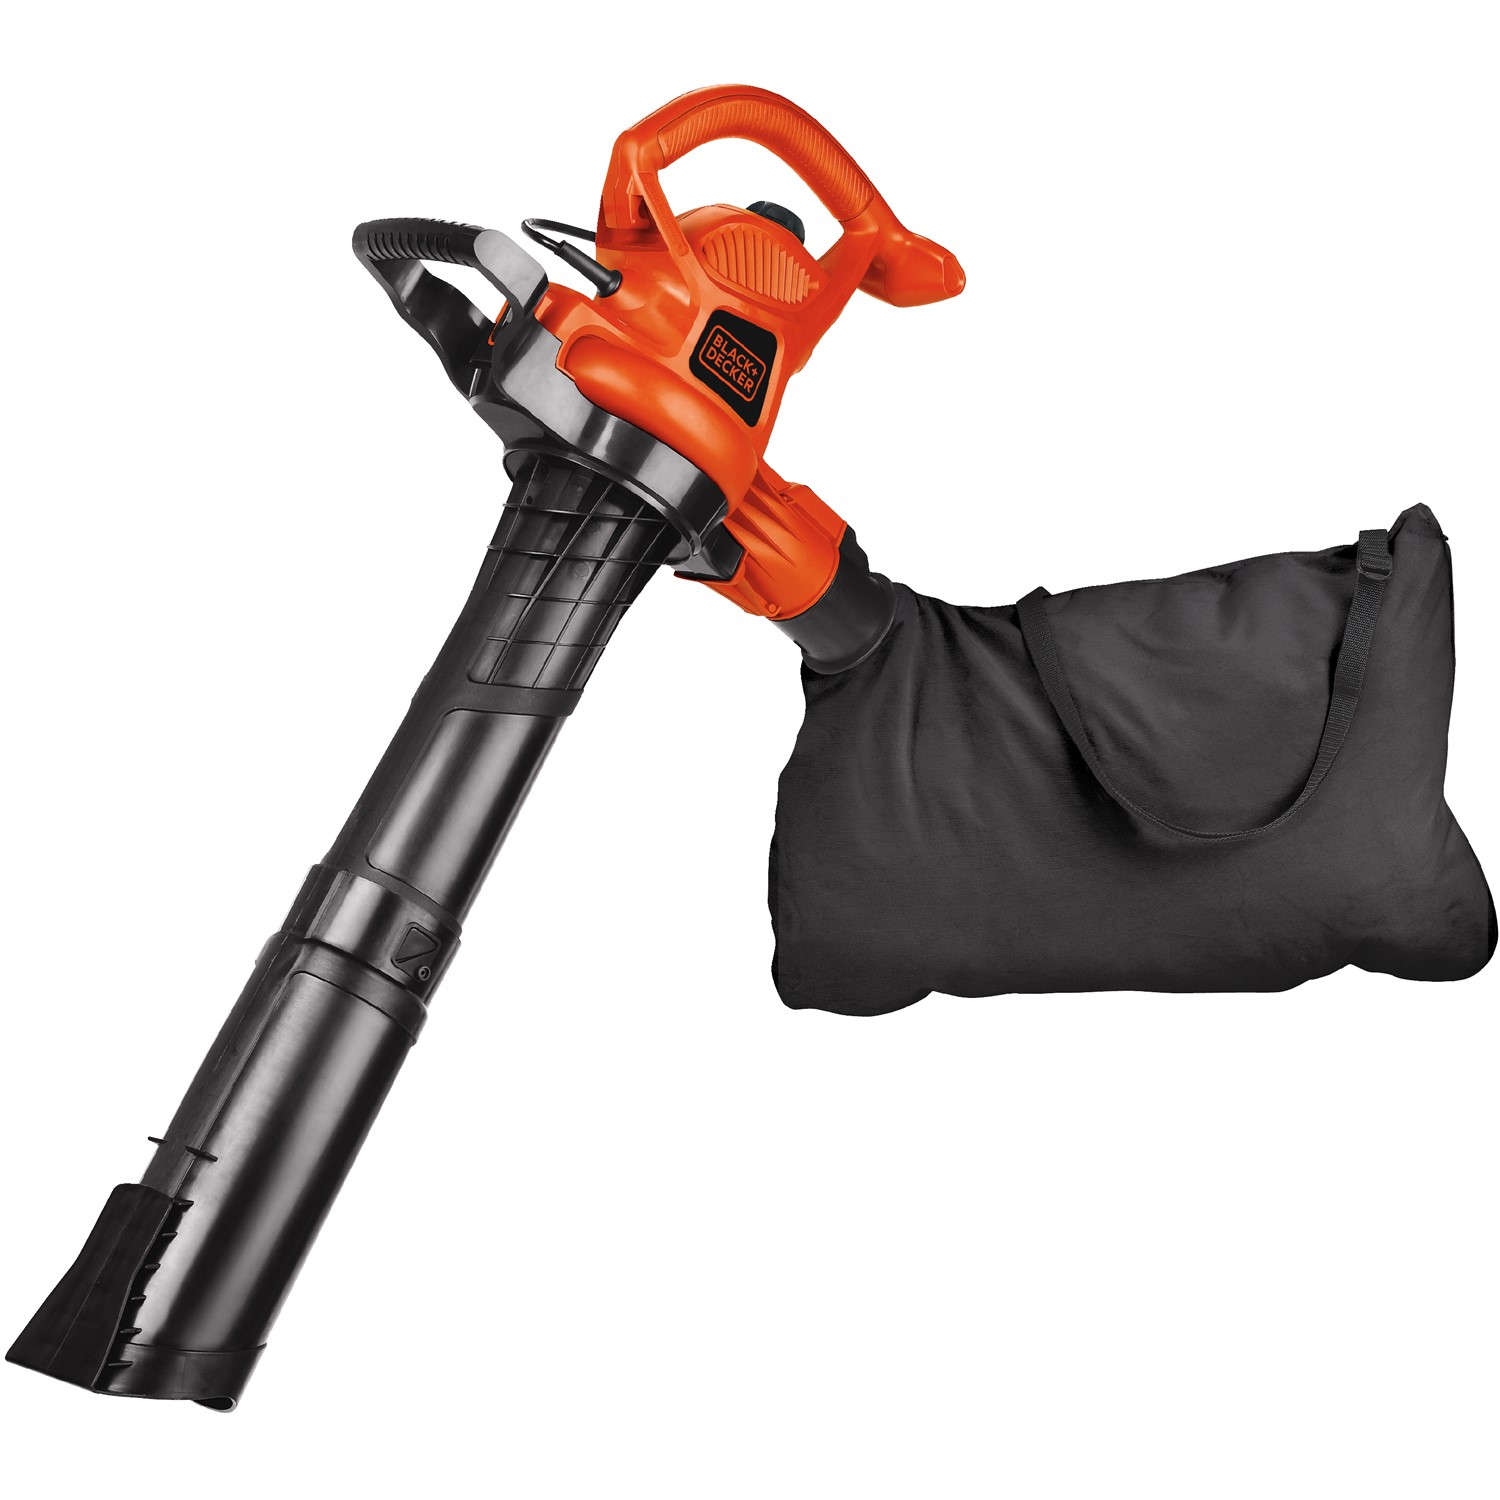 BLACK+DECKER BV5600 High Performance Blower/Vacuum/Mulcher